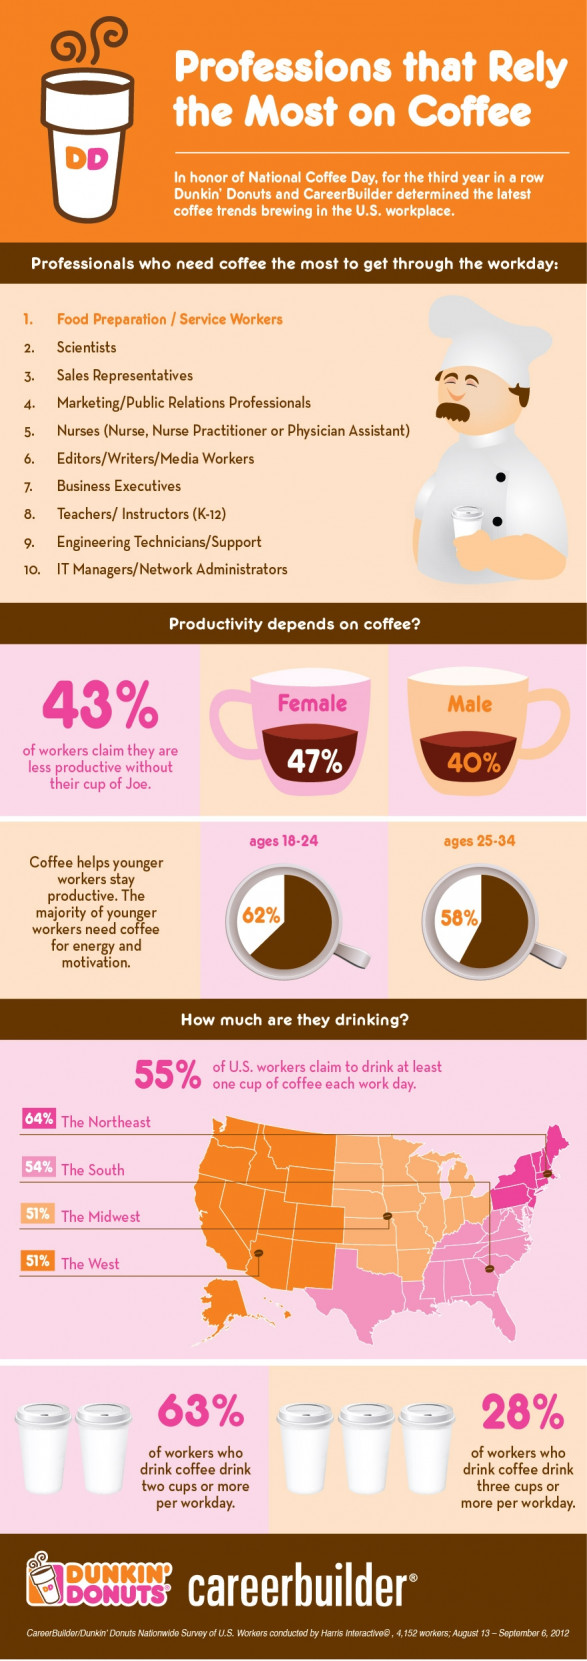 Professions that Rely the Most on Coffee